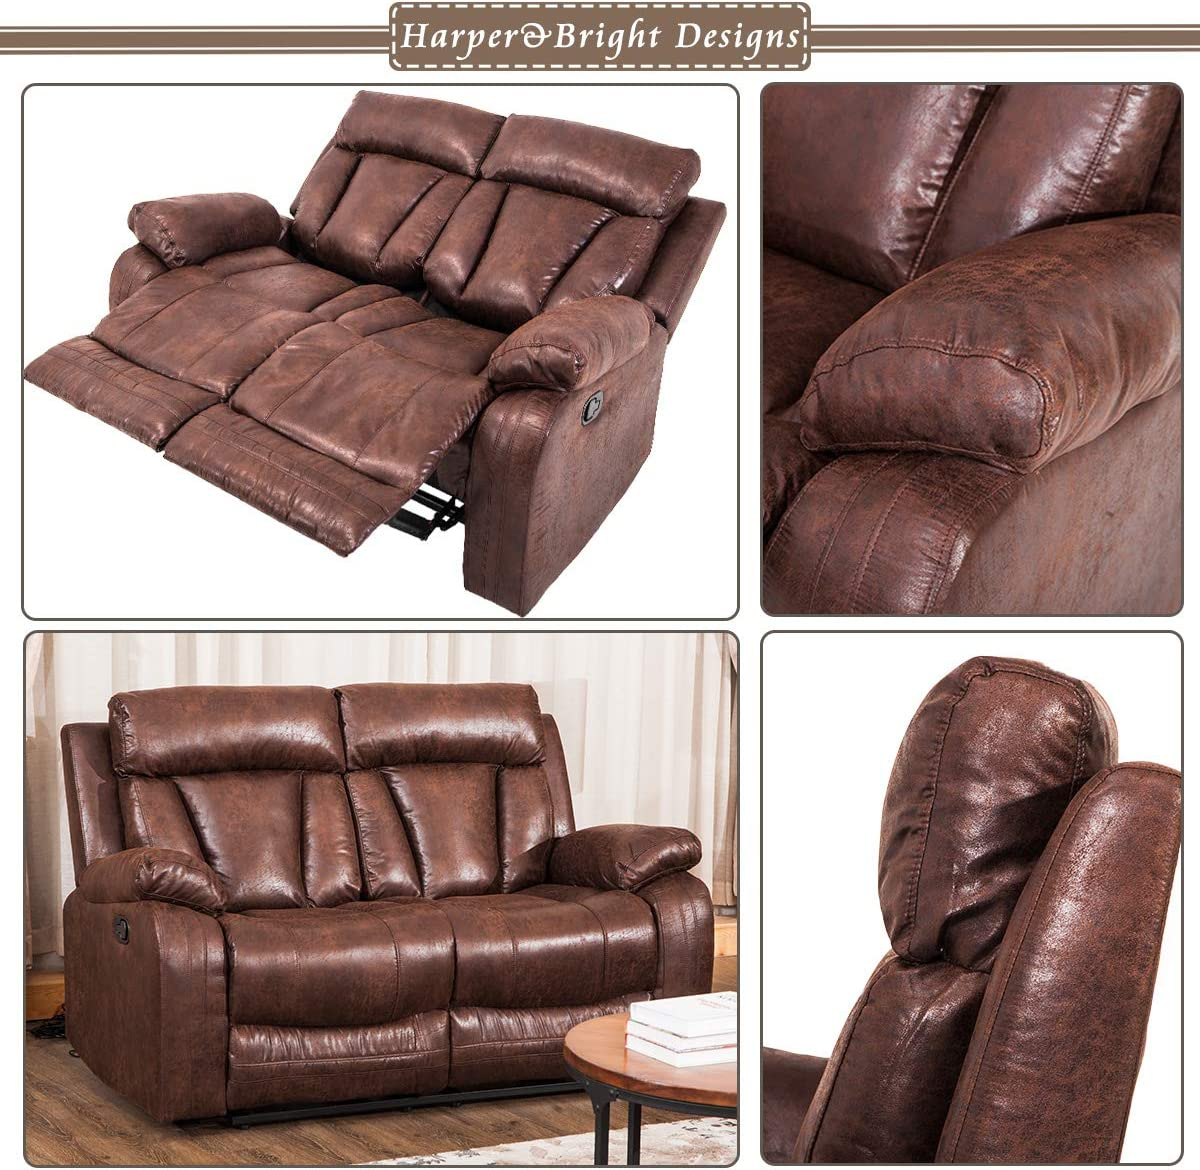 Reclining Sofa Leather Recliner Loveseat for Living Room Classic Reclining Loveseat Retro Style Sleeper Sofa for Home and Office